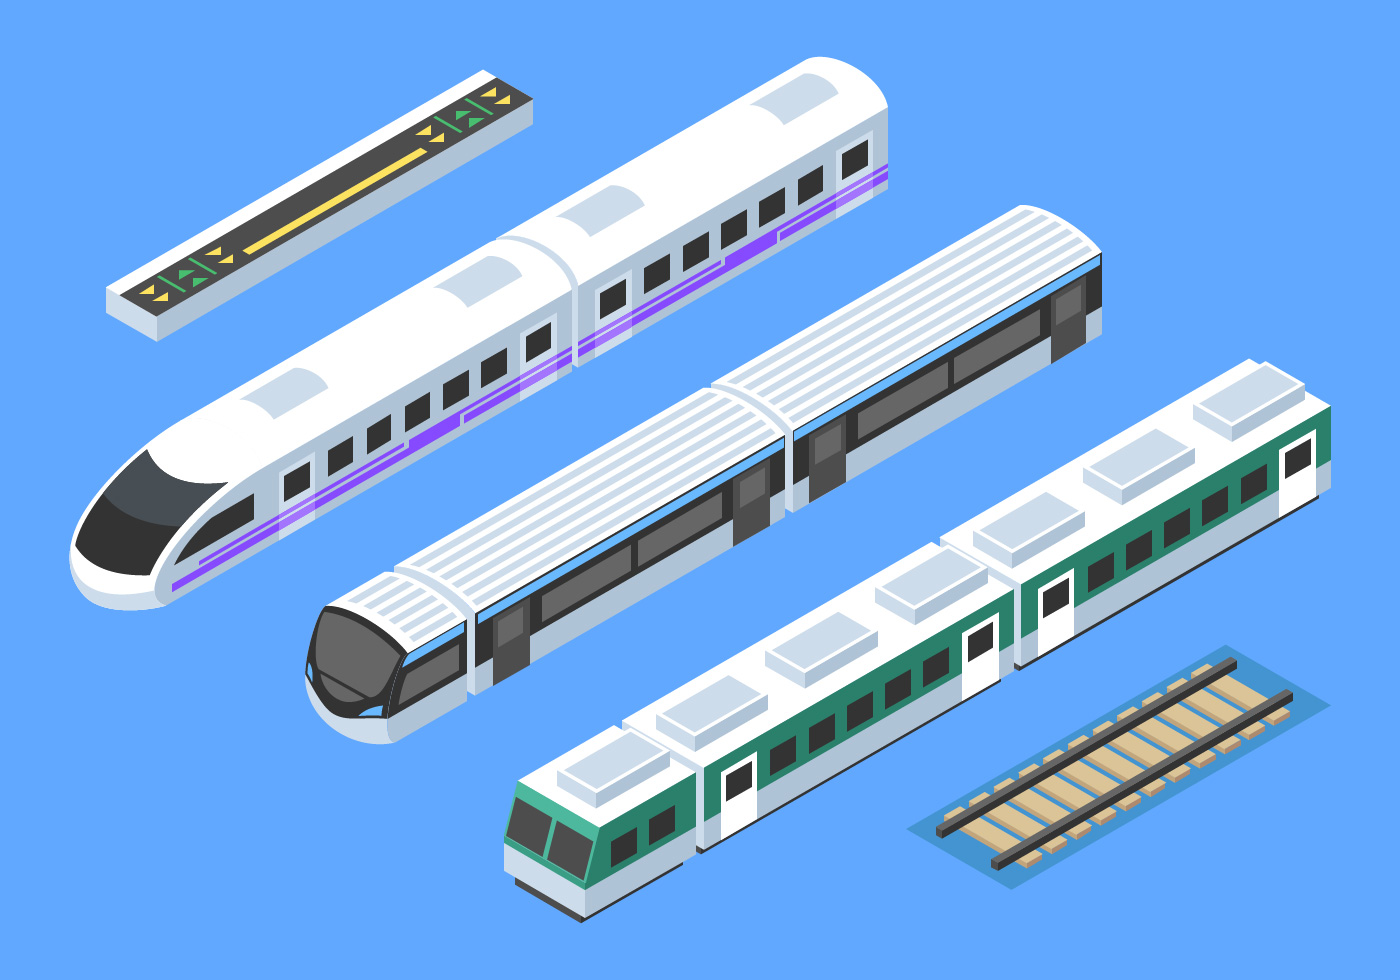 Game Gift Kids Train Vector Travel Railroad Transportation Toy Locomotive  Illustration, Shipping, Set, Sign PNG and Vector with Transparent  Background for Free Download